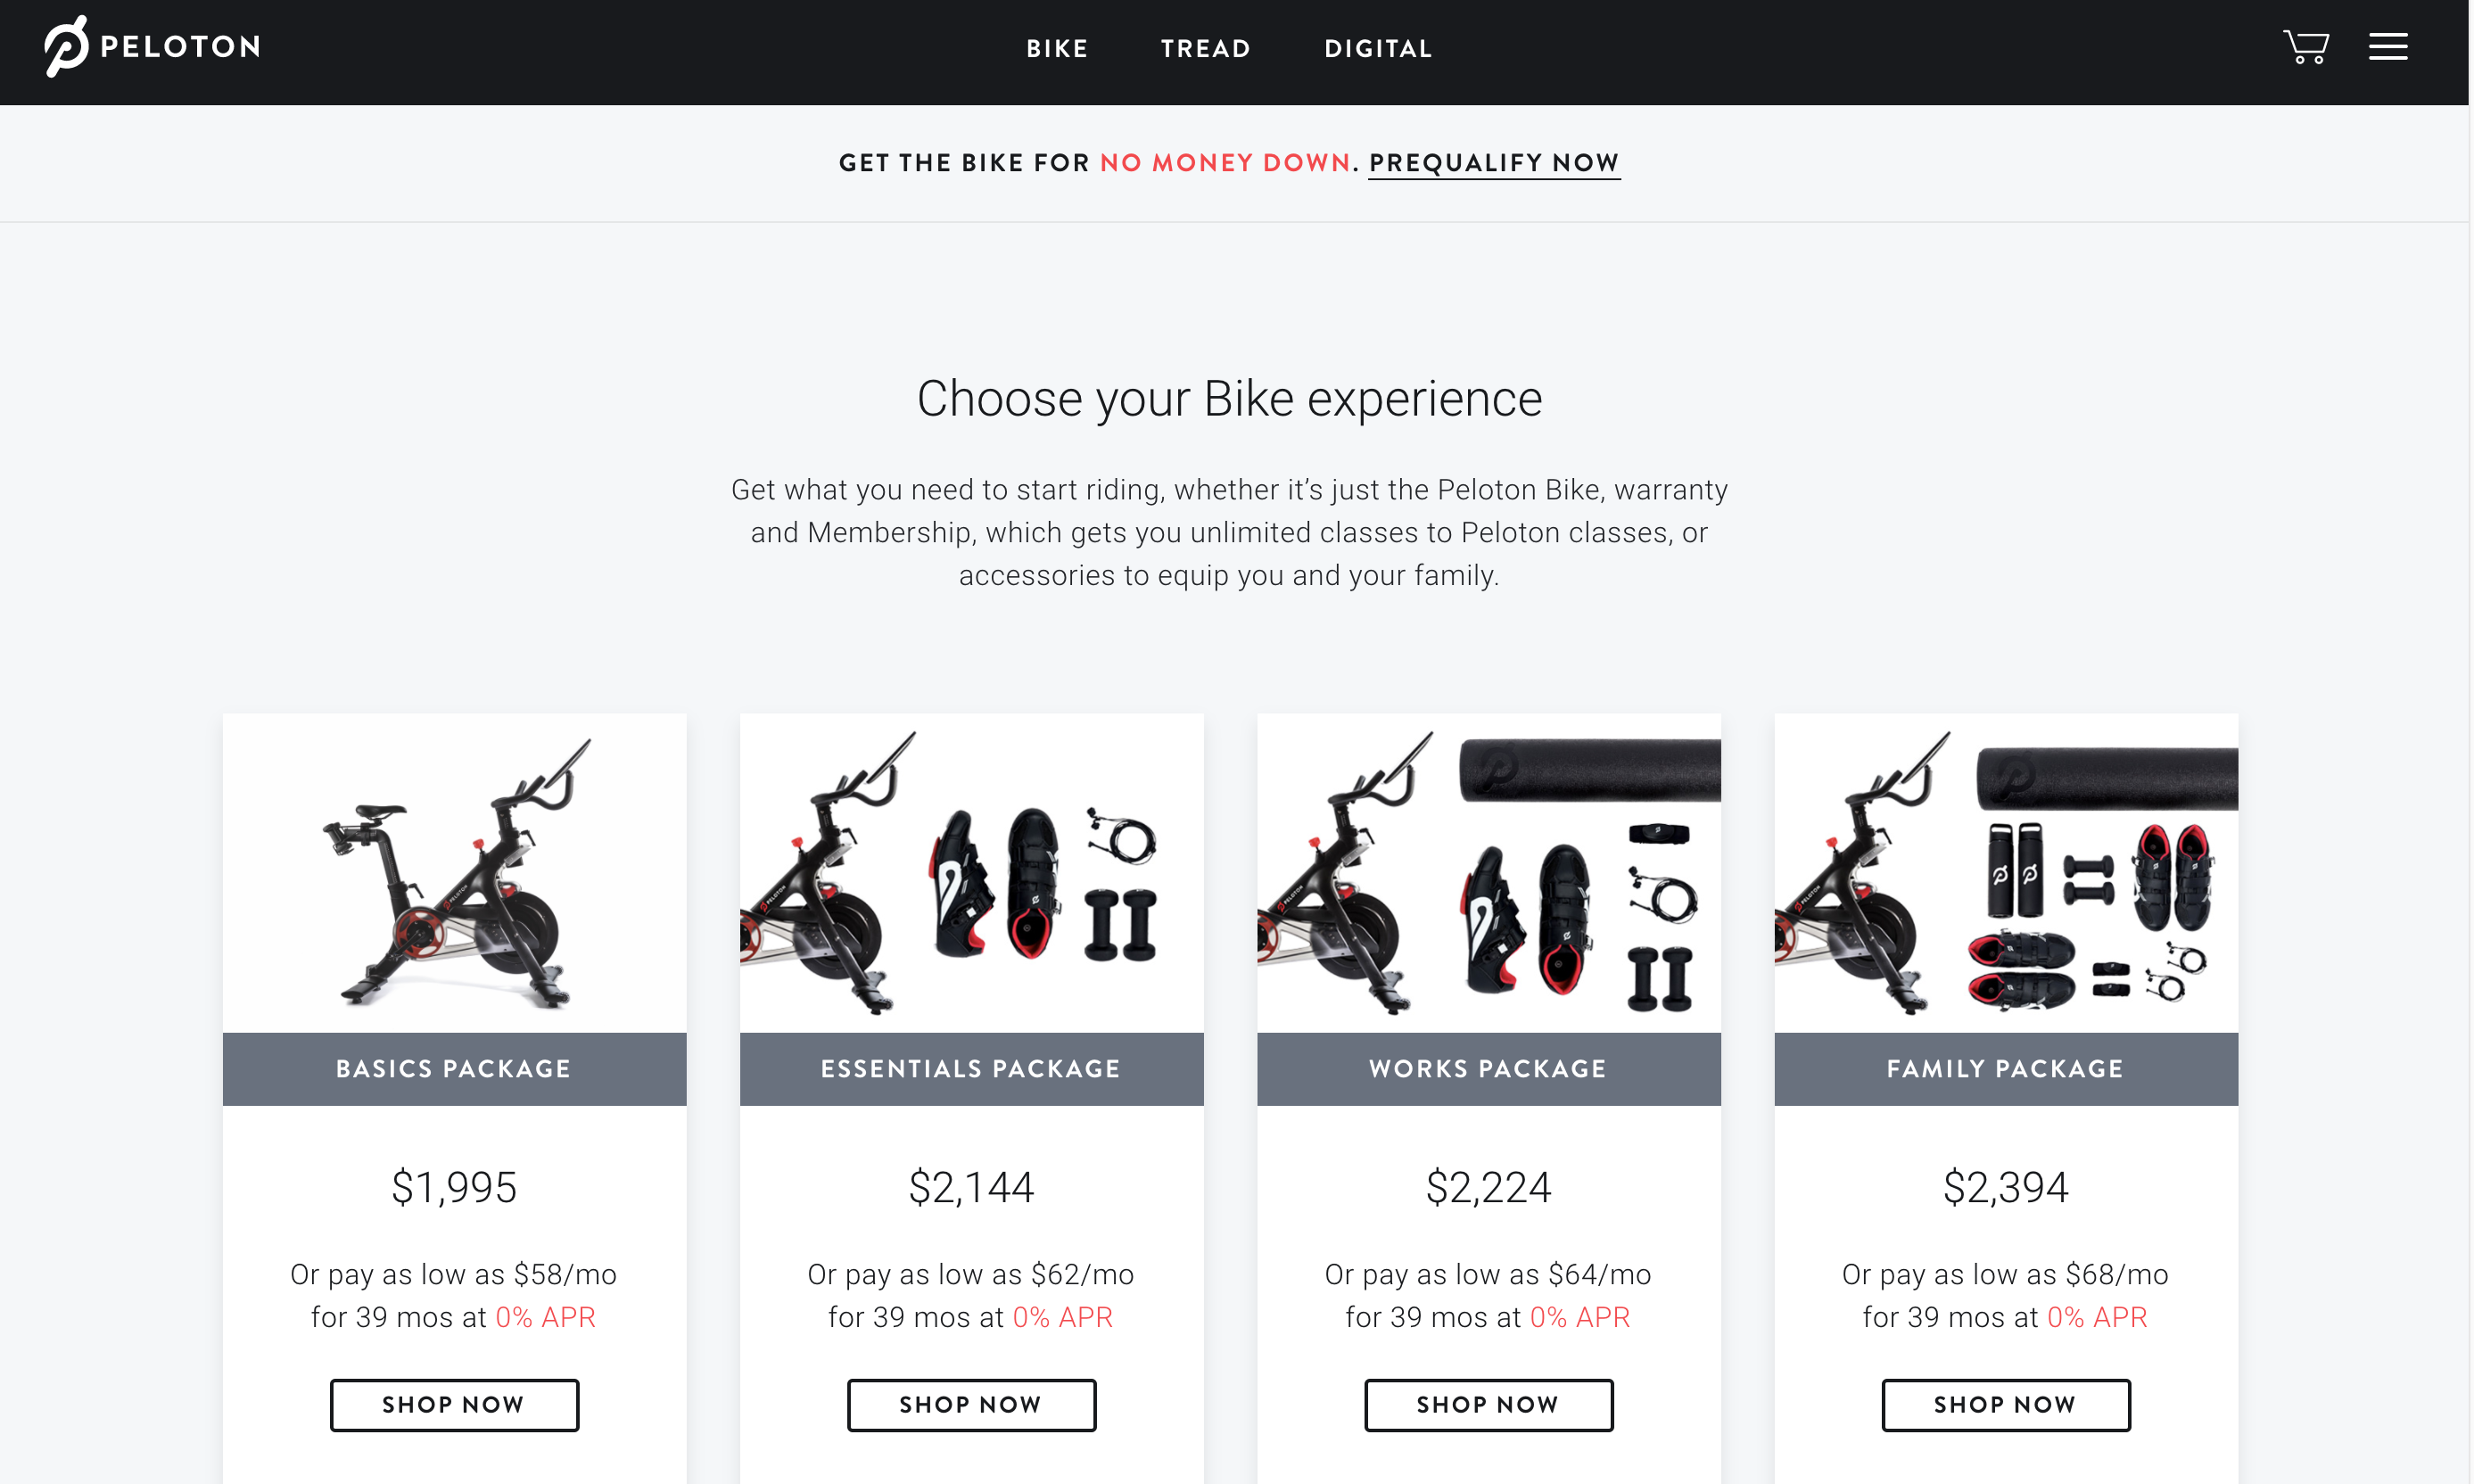 Affirm offer leads to lift in sales conversion for Peloton - Image 2